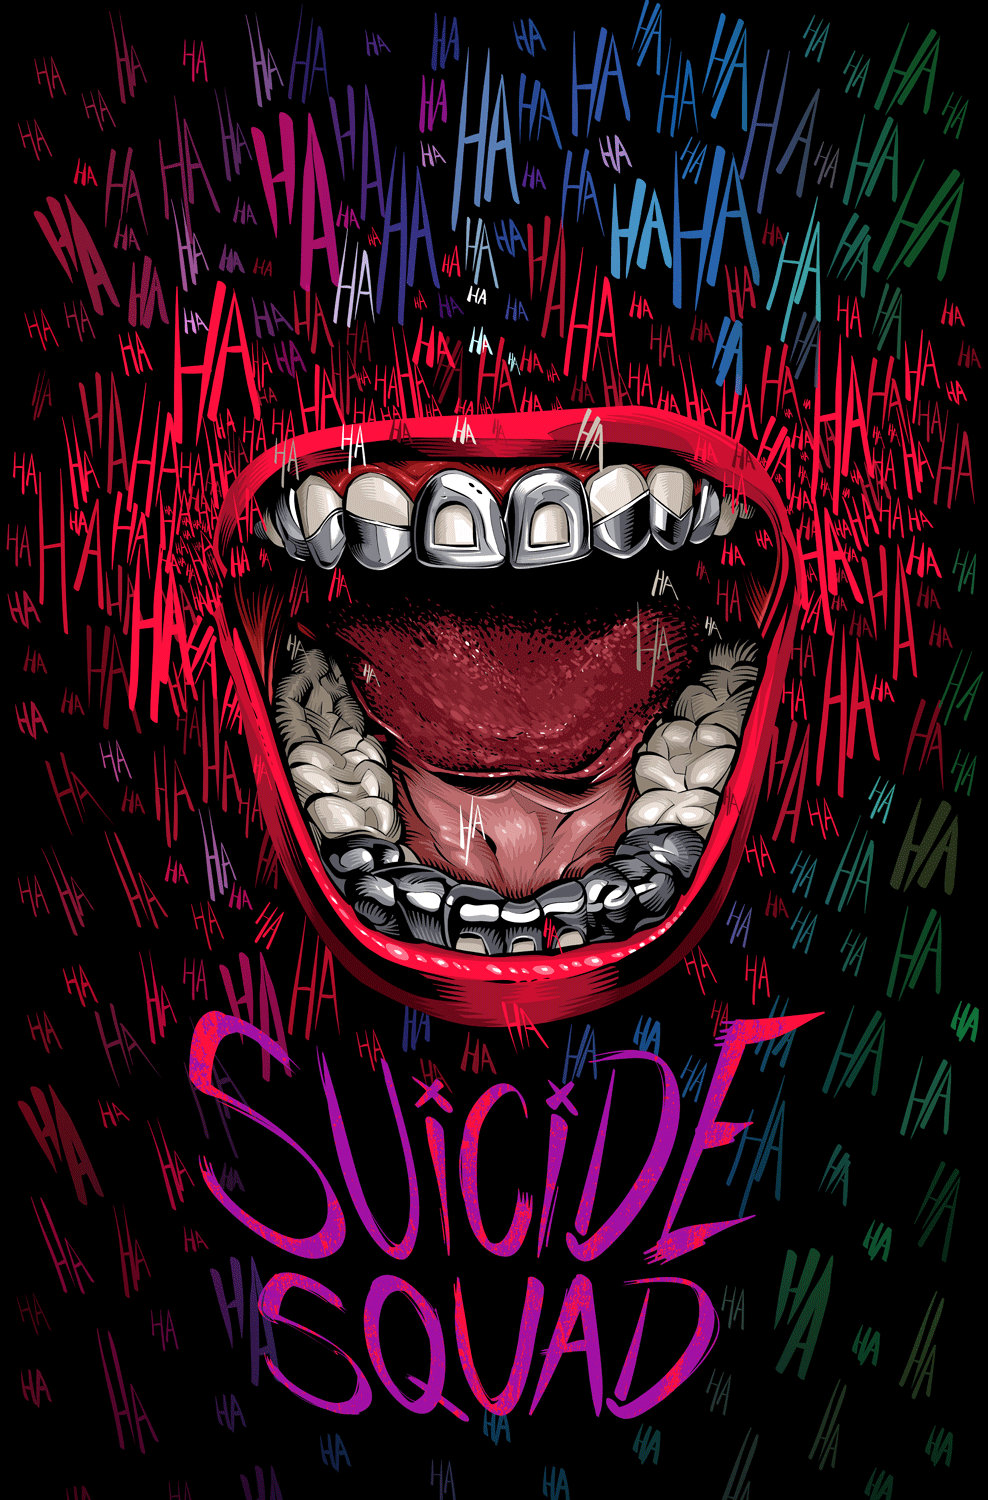 Suicide Squad (Poster by Cristiano Siqueira)